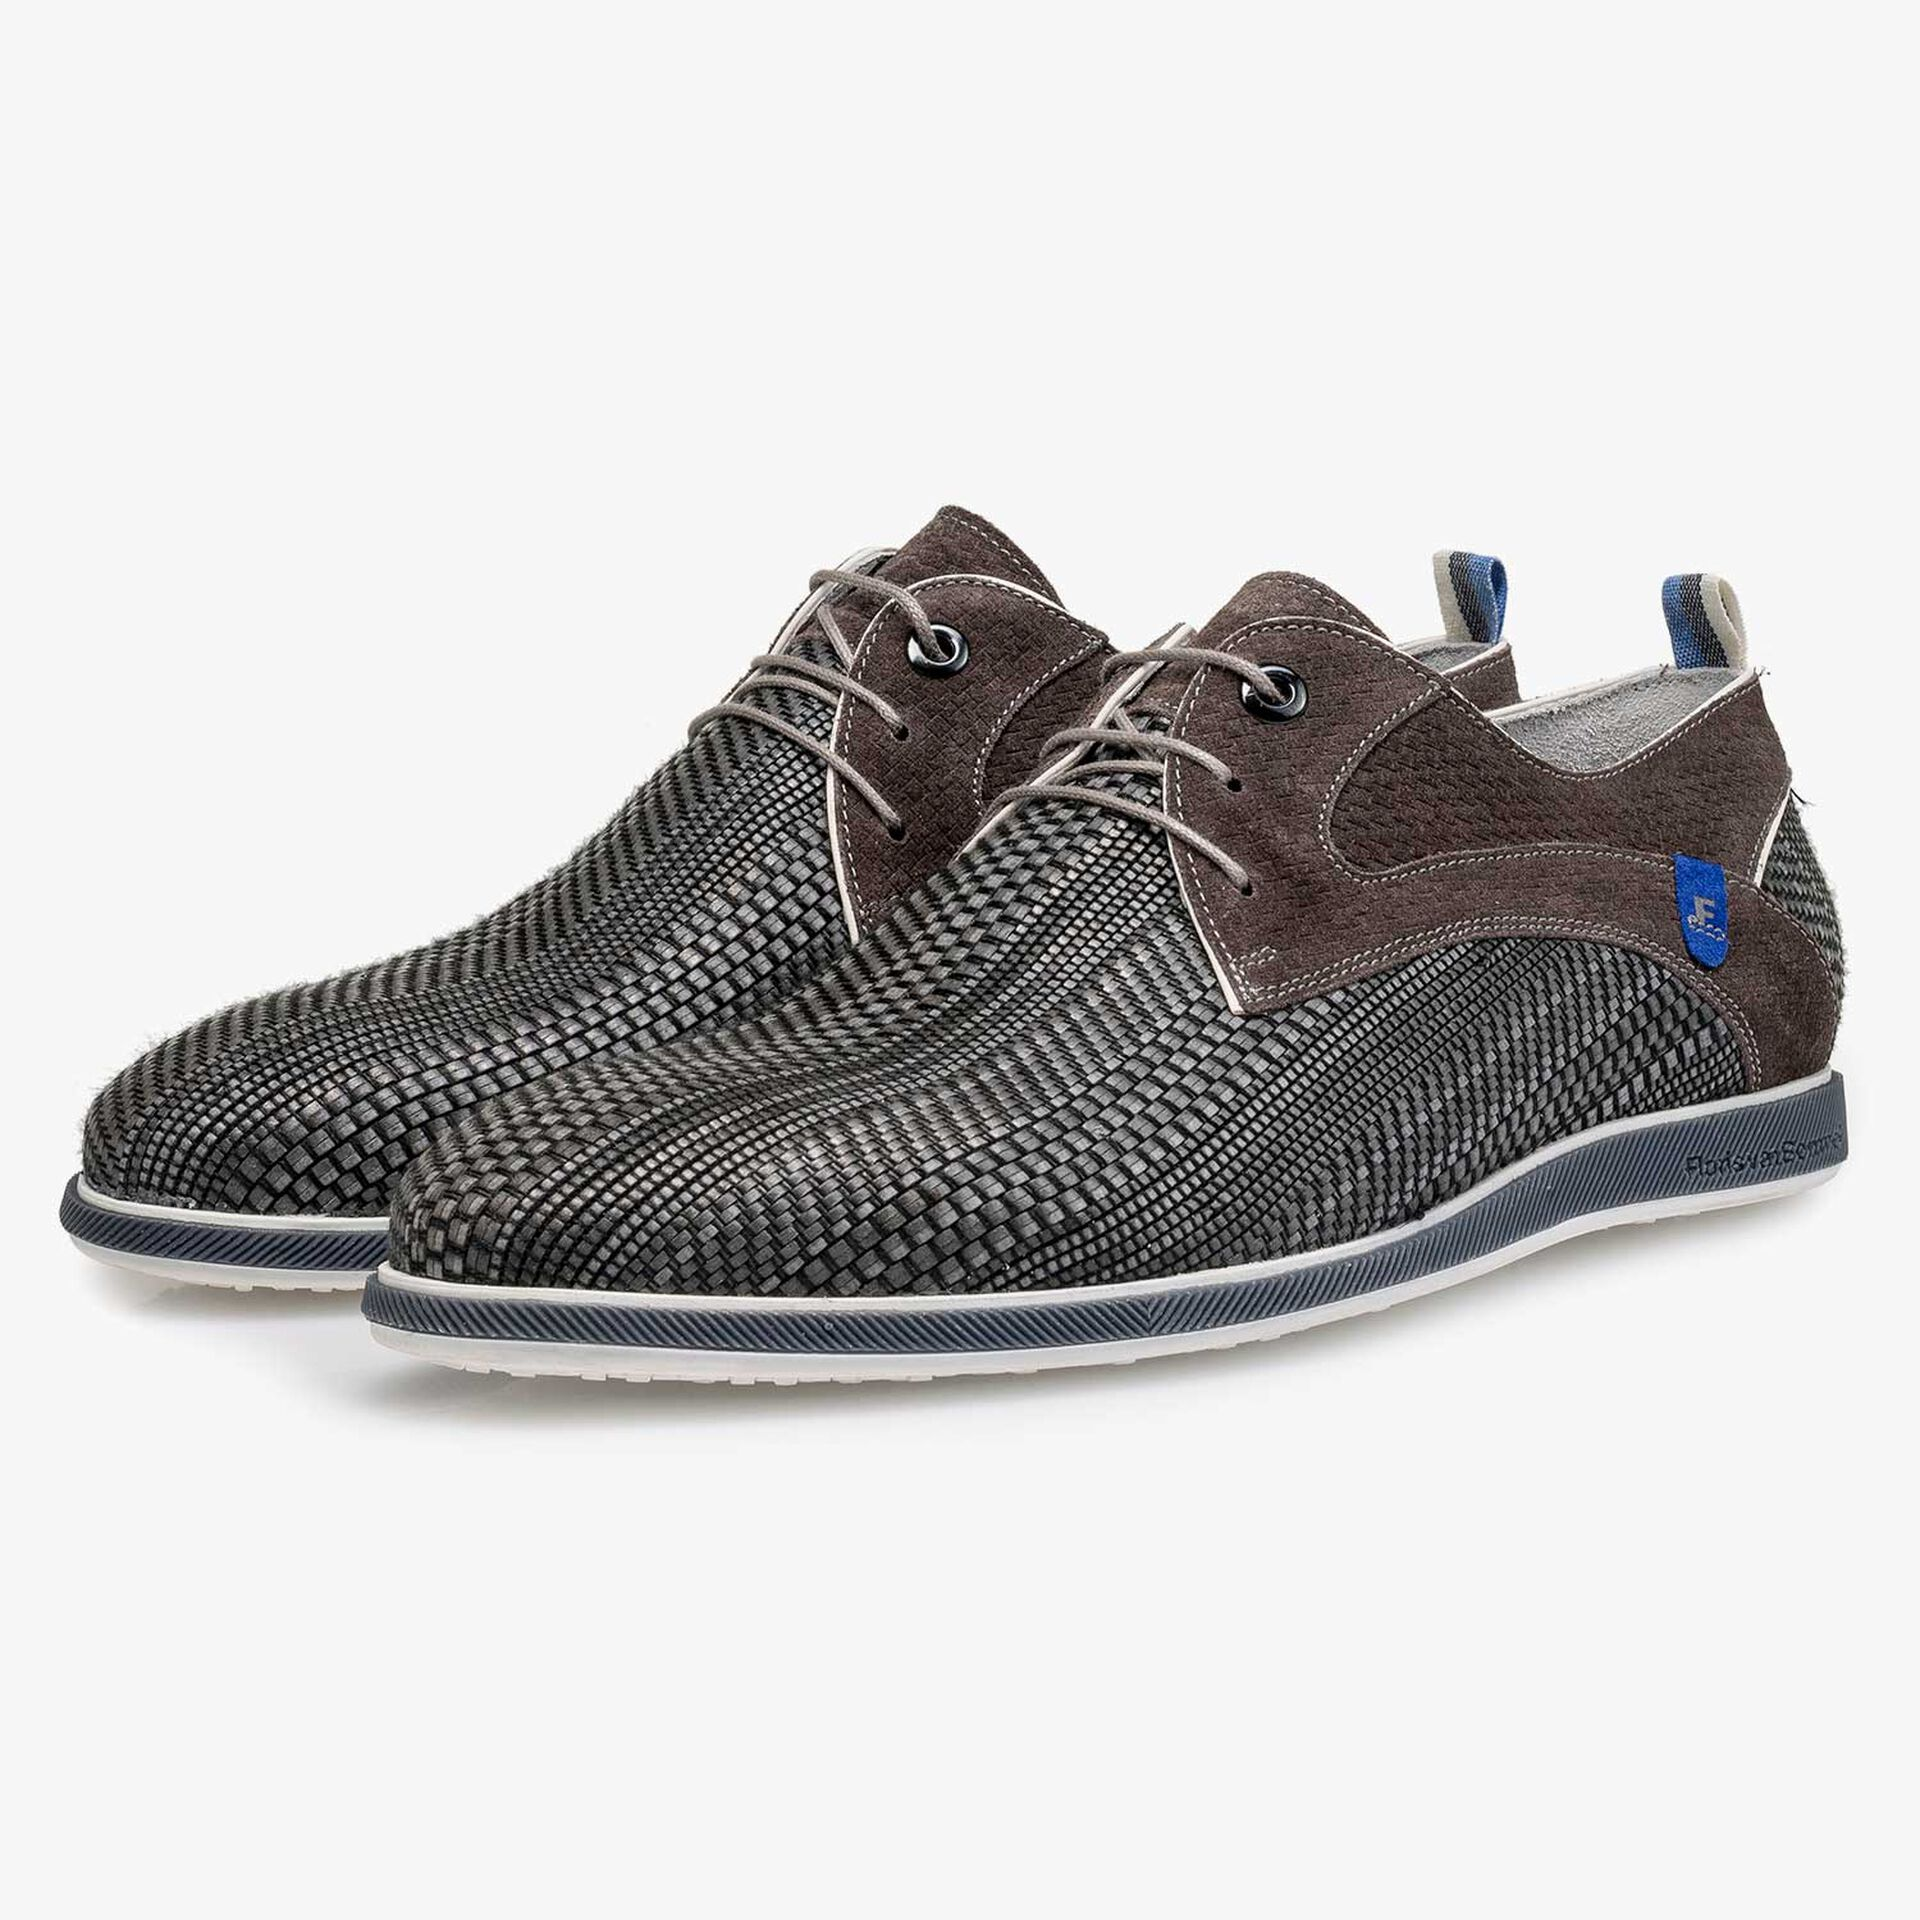 Grey braided leather lace shoe